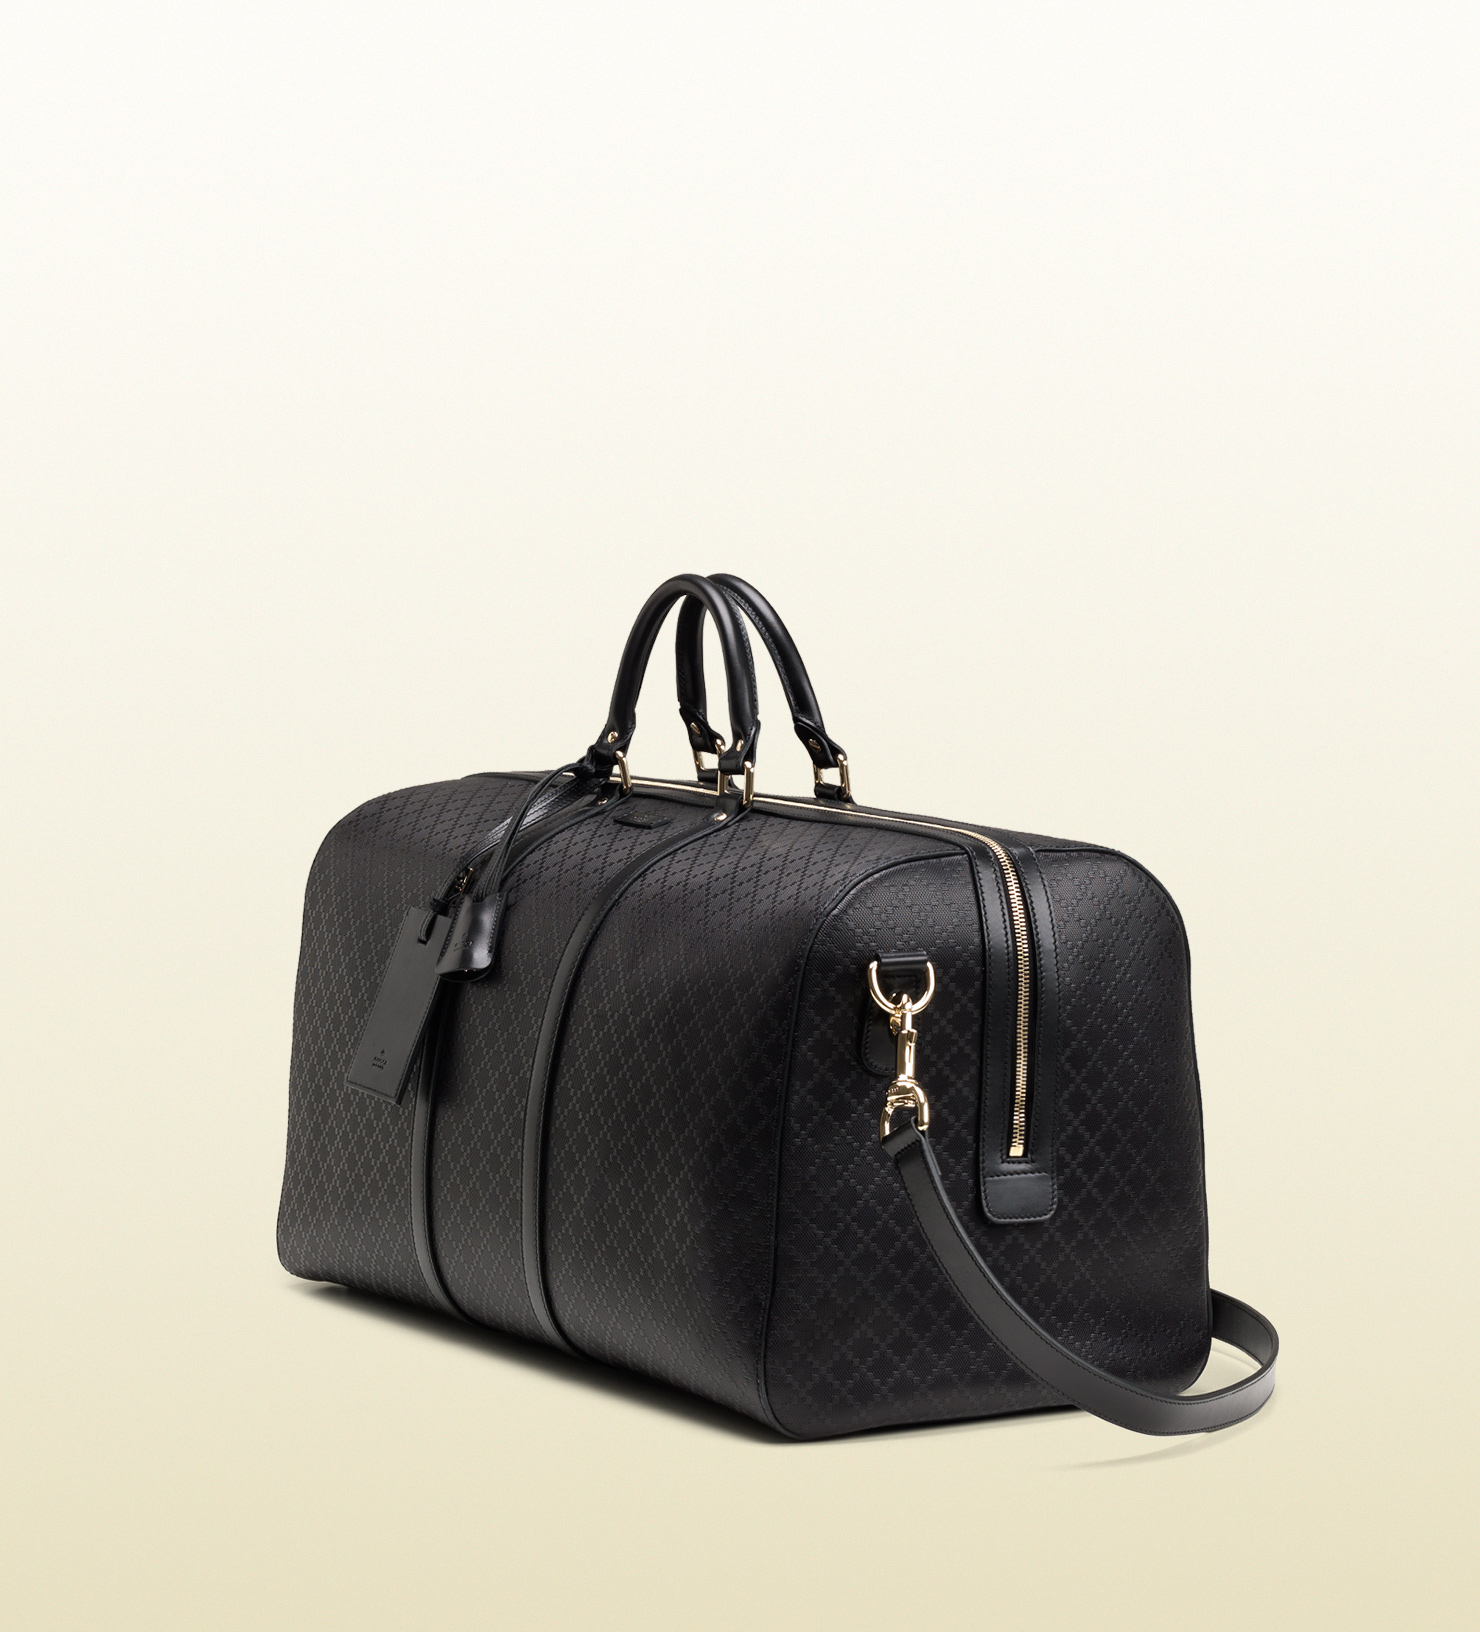 27fd234f5b45 Black Gucci Duffle Bag | Stanford Center for Opportunity Policy in ...